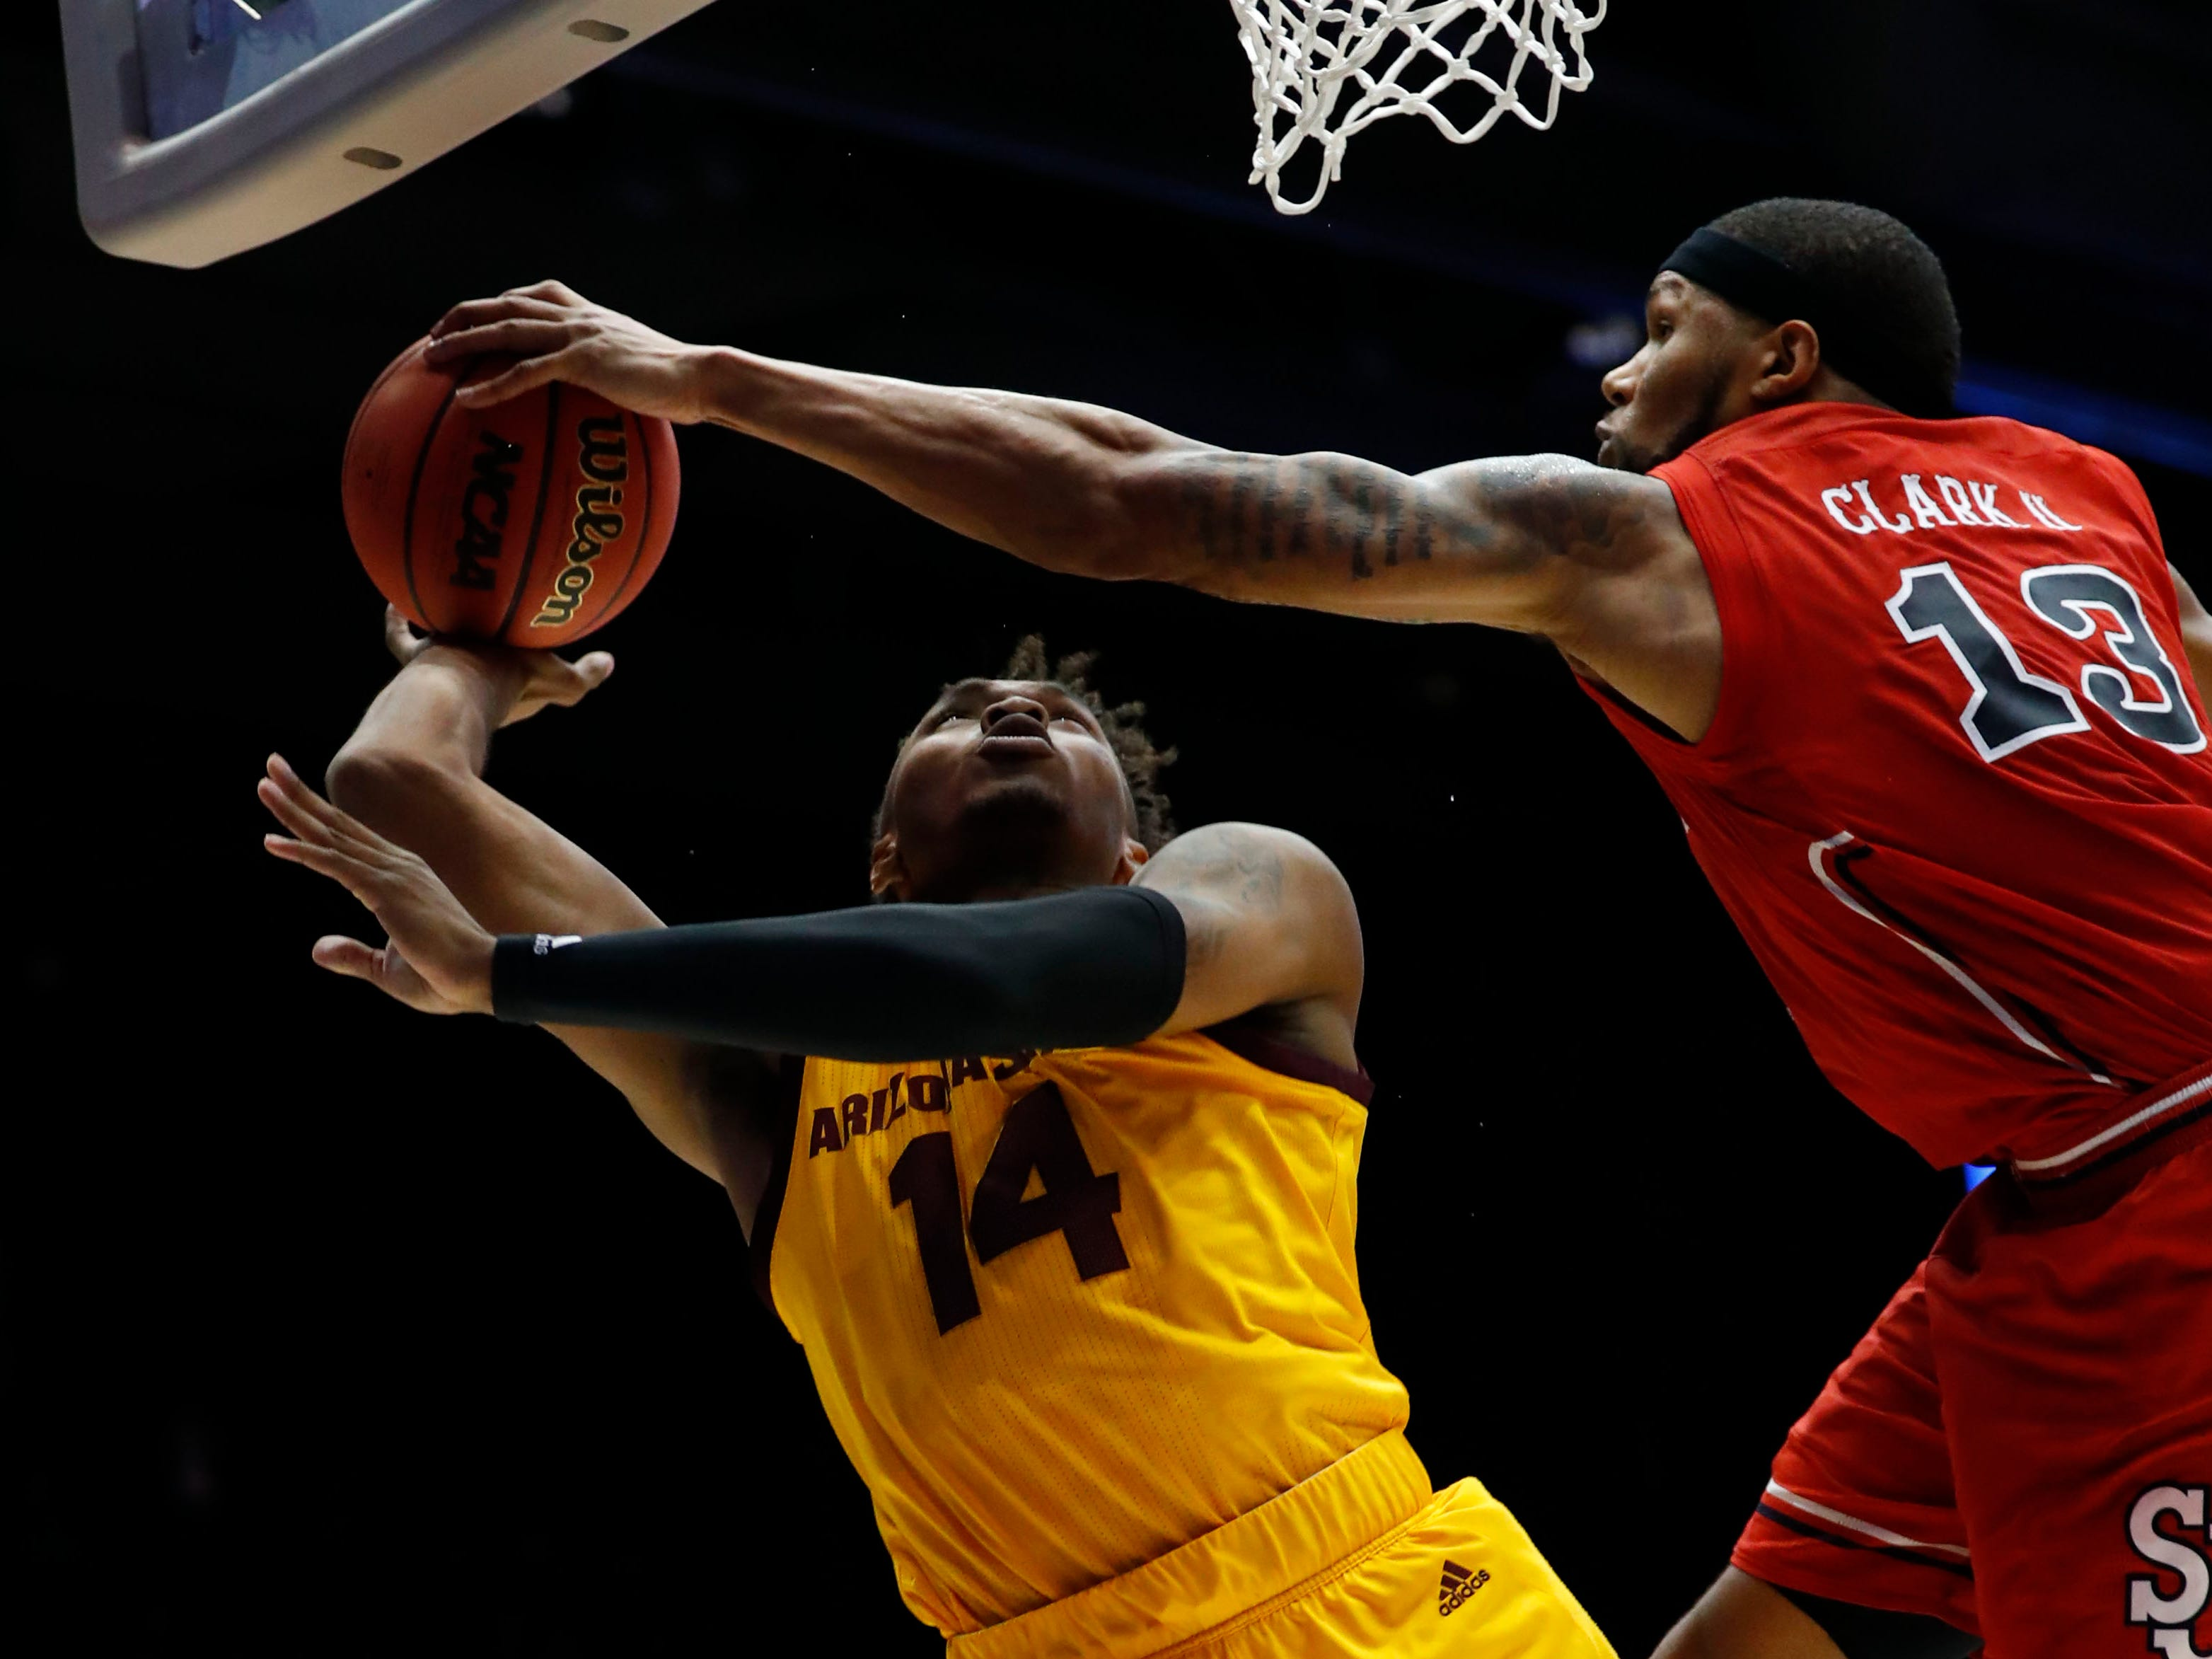 Mar 20, 2019; Dayton, OH, USA; St. John's Red Storm forward Marvin Clark II (13) blocks a shot from Arizona State Sun Devils forward Kimani Lawrence (14) in the second half in the First Four of the 2019 NCAA Tournament at Dayton Arena. Mandatory Credit: Rick Osentoski-USA TODAY Sports